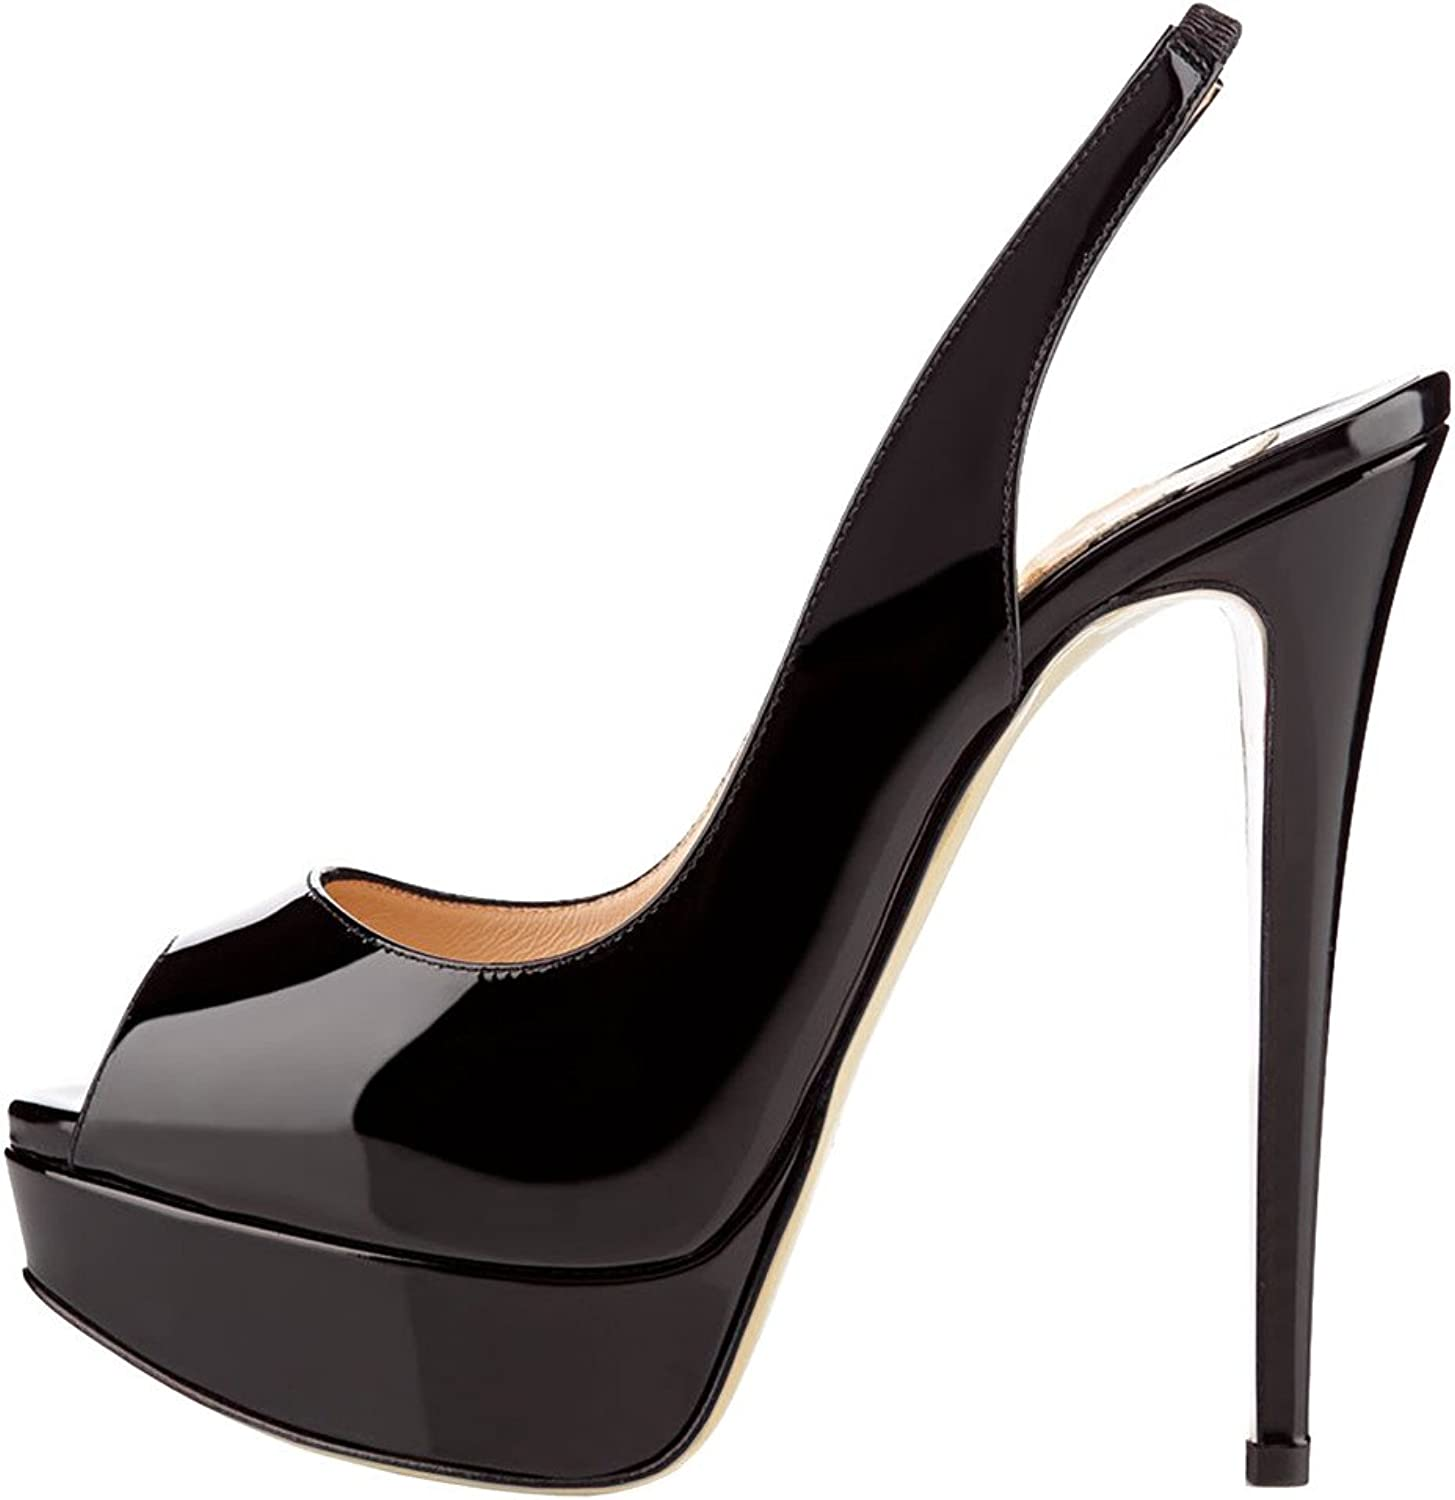 MERUMOTE Women's Slingbacks Peep Toe High Heels shoes Platform Pumps